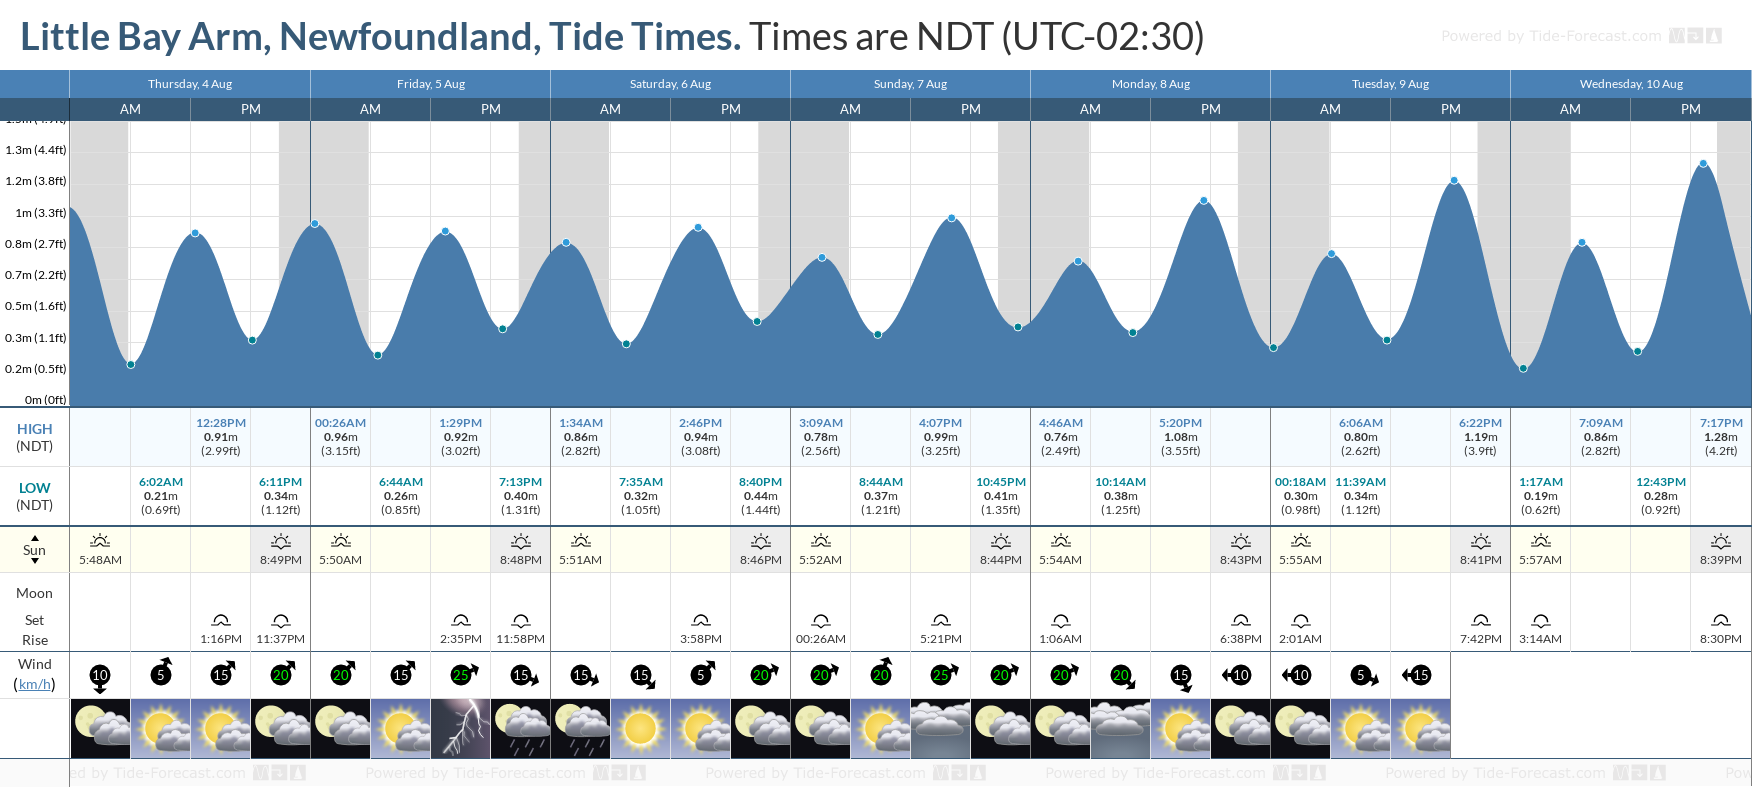 Little Bay Arm, Newfoundland Tide Chart including high and low tide tide times for the next 7 days